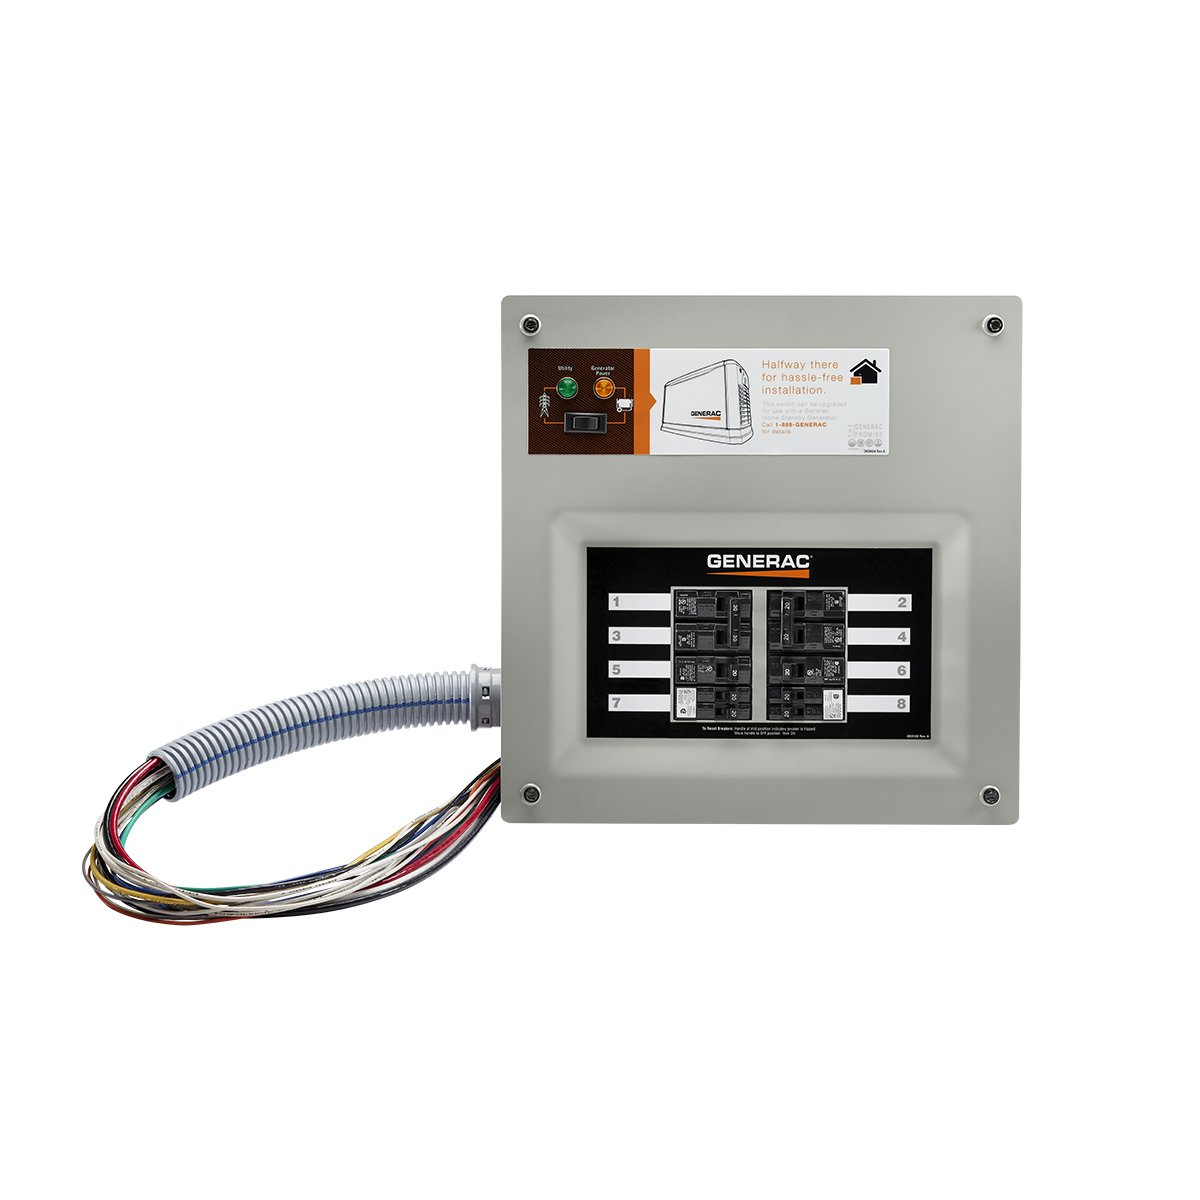 Generac 9854 HomeLink 50-Amp Indoor Pre-wired Upgradeable Manual Transfer Switch for 10-16 circuits by Generac